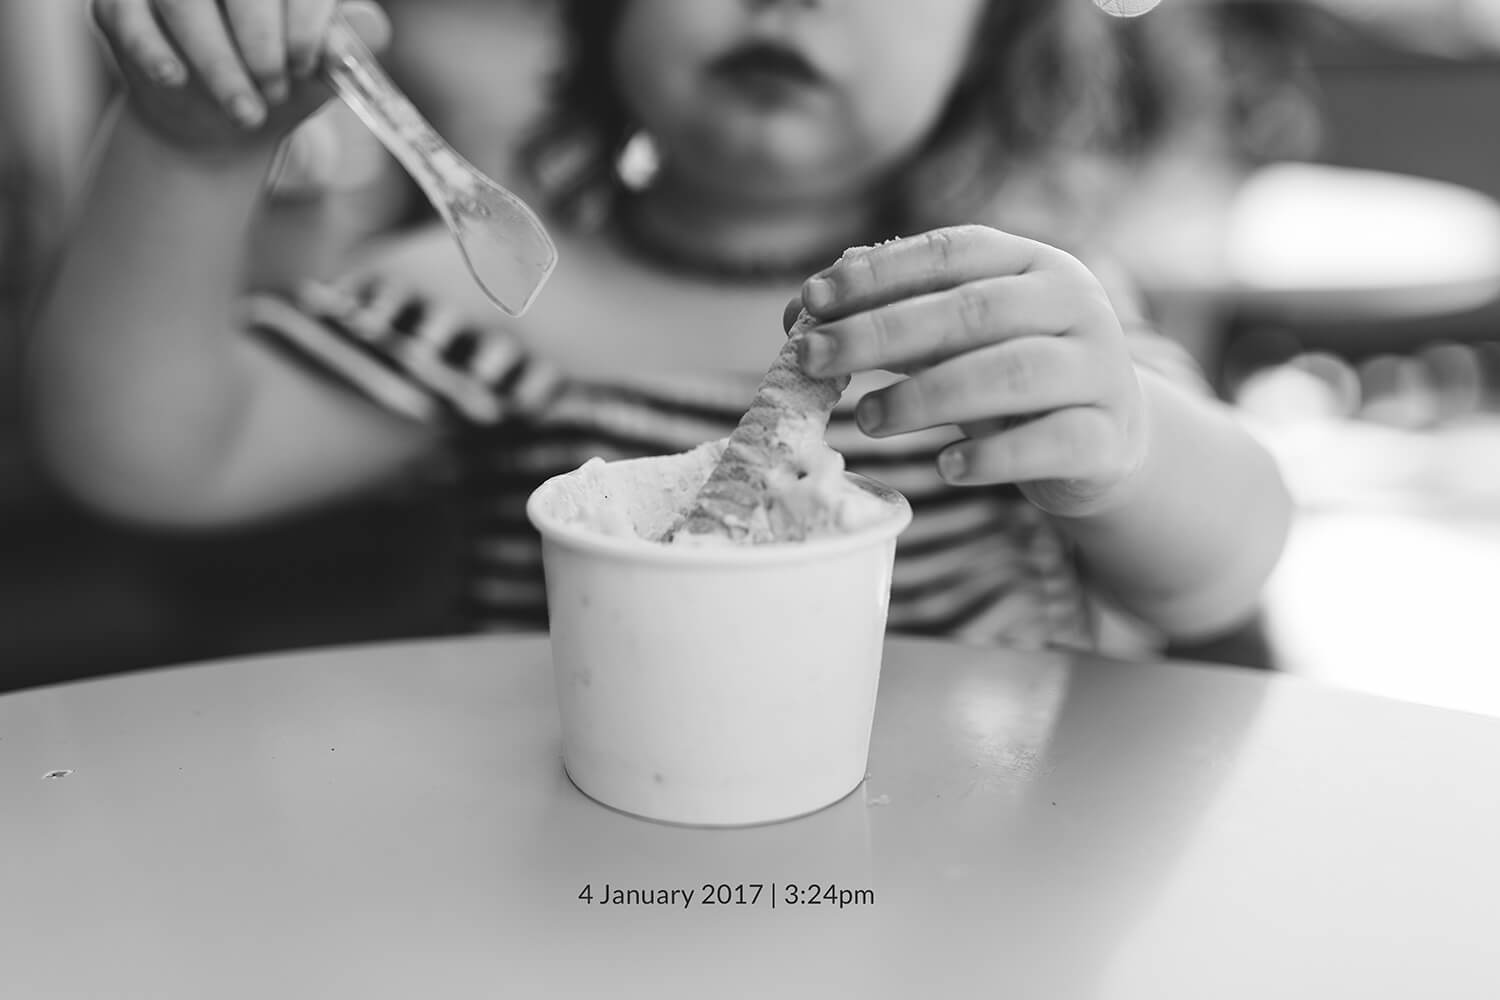 Melbourne child and family photography - Photo-a-day project: Day 4